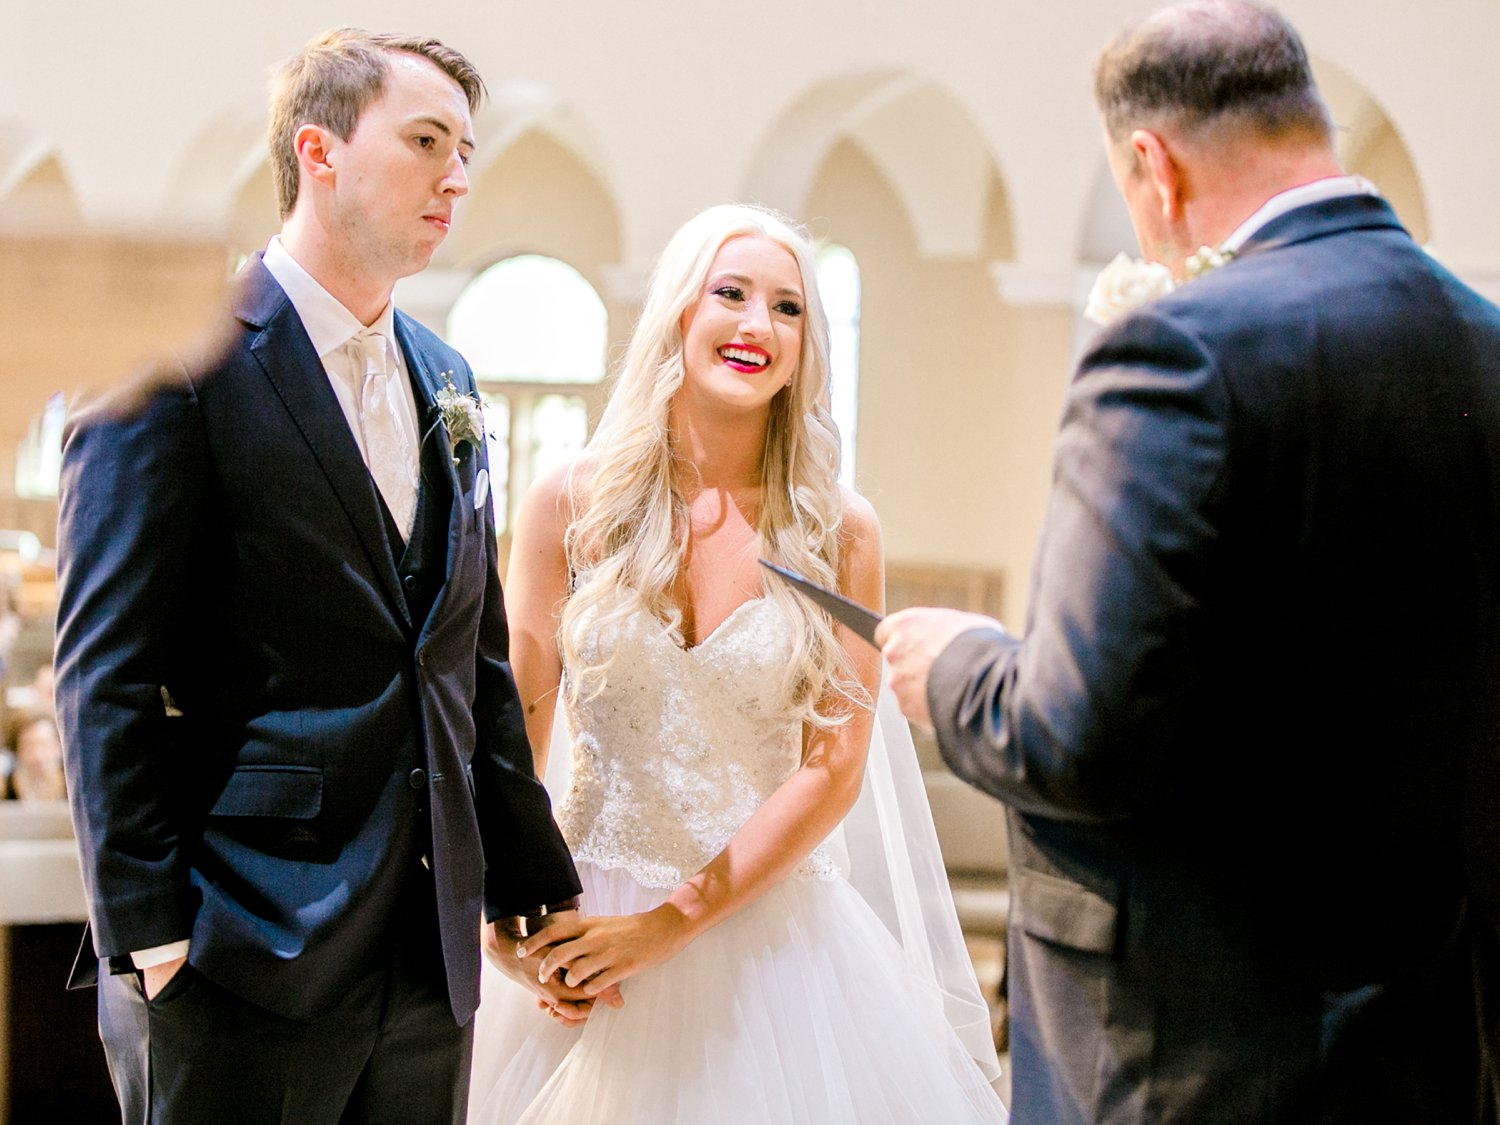 MADI_AND_WILL_STEPHENS_ALLEEJ_LUBBOCK_PHOTOGRAPHER_TEXAS+TECH+FRAZIER_ALUMNI0108.jpg